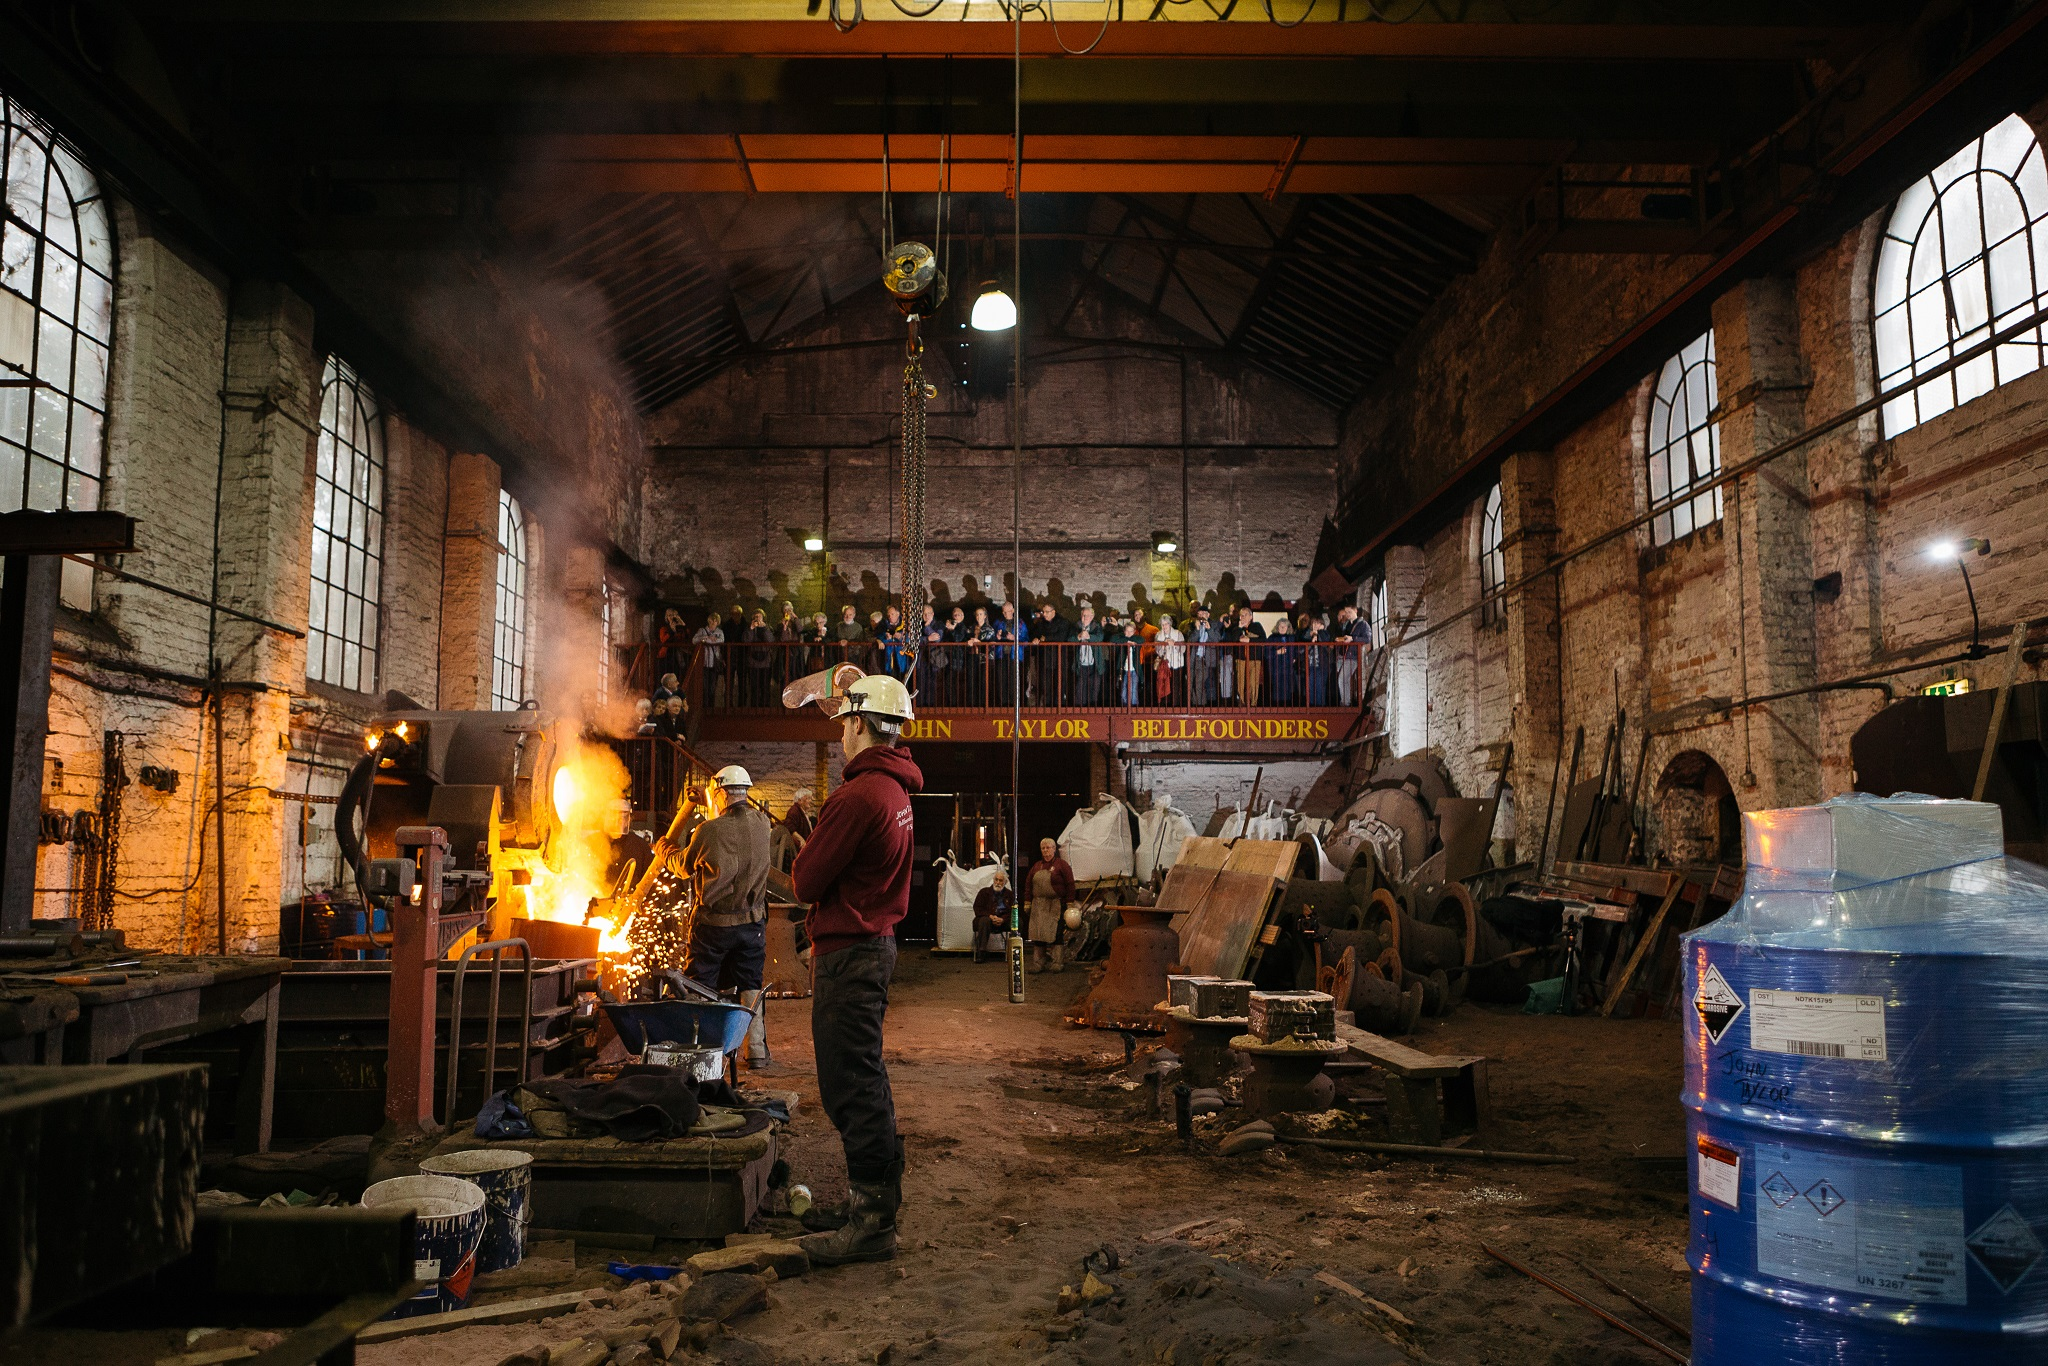 Loughborough Bellfoundry Trust receives lifeline grant from Government's £1.57bn Culture Recovery Fund